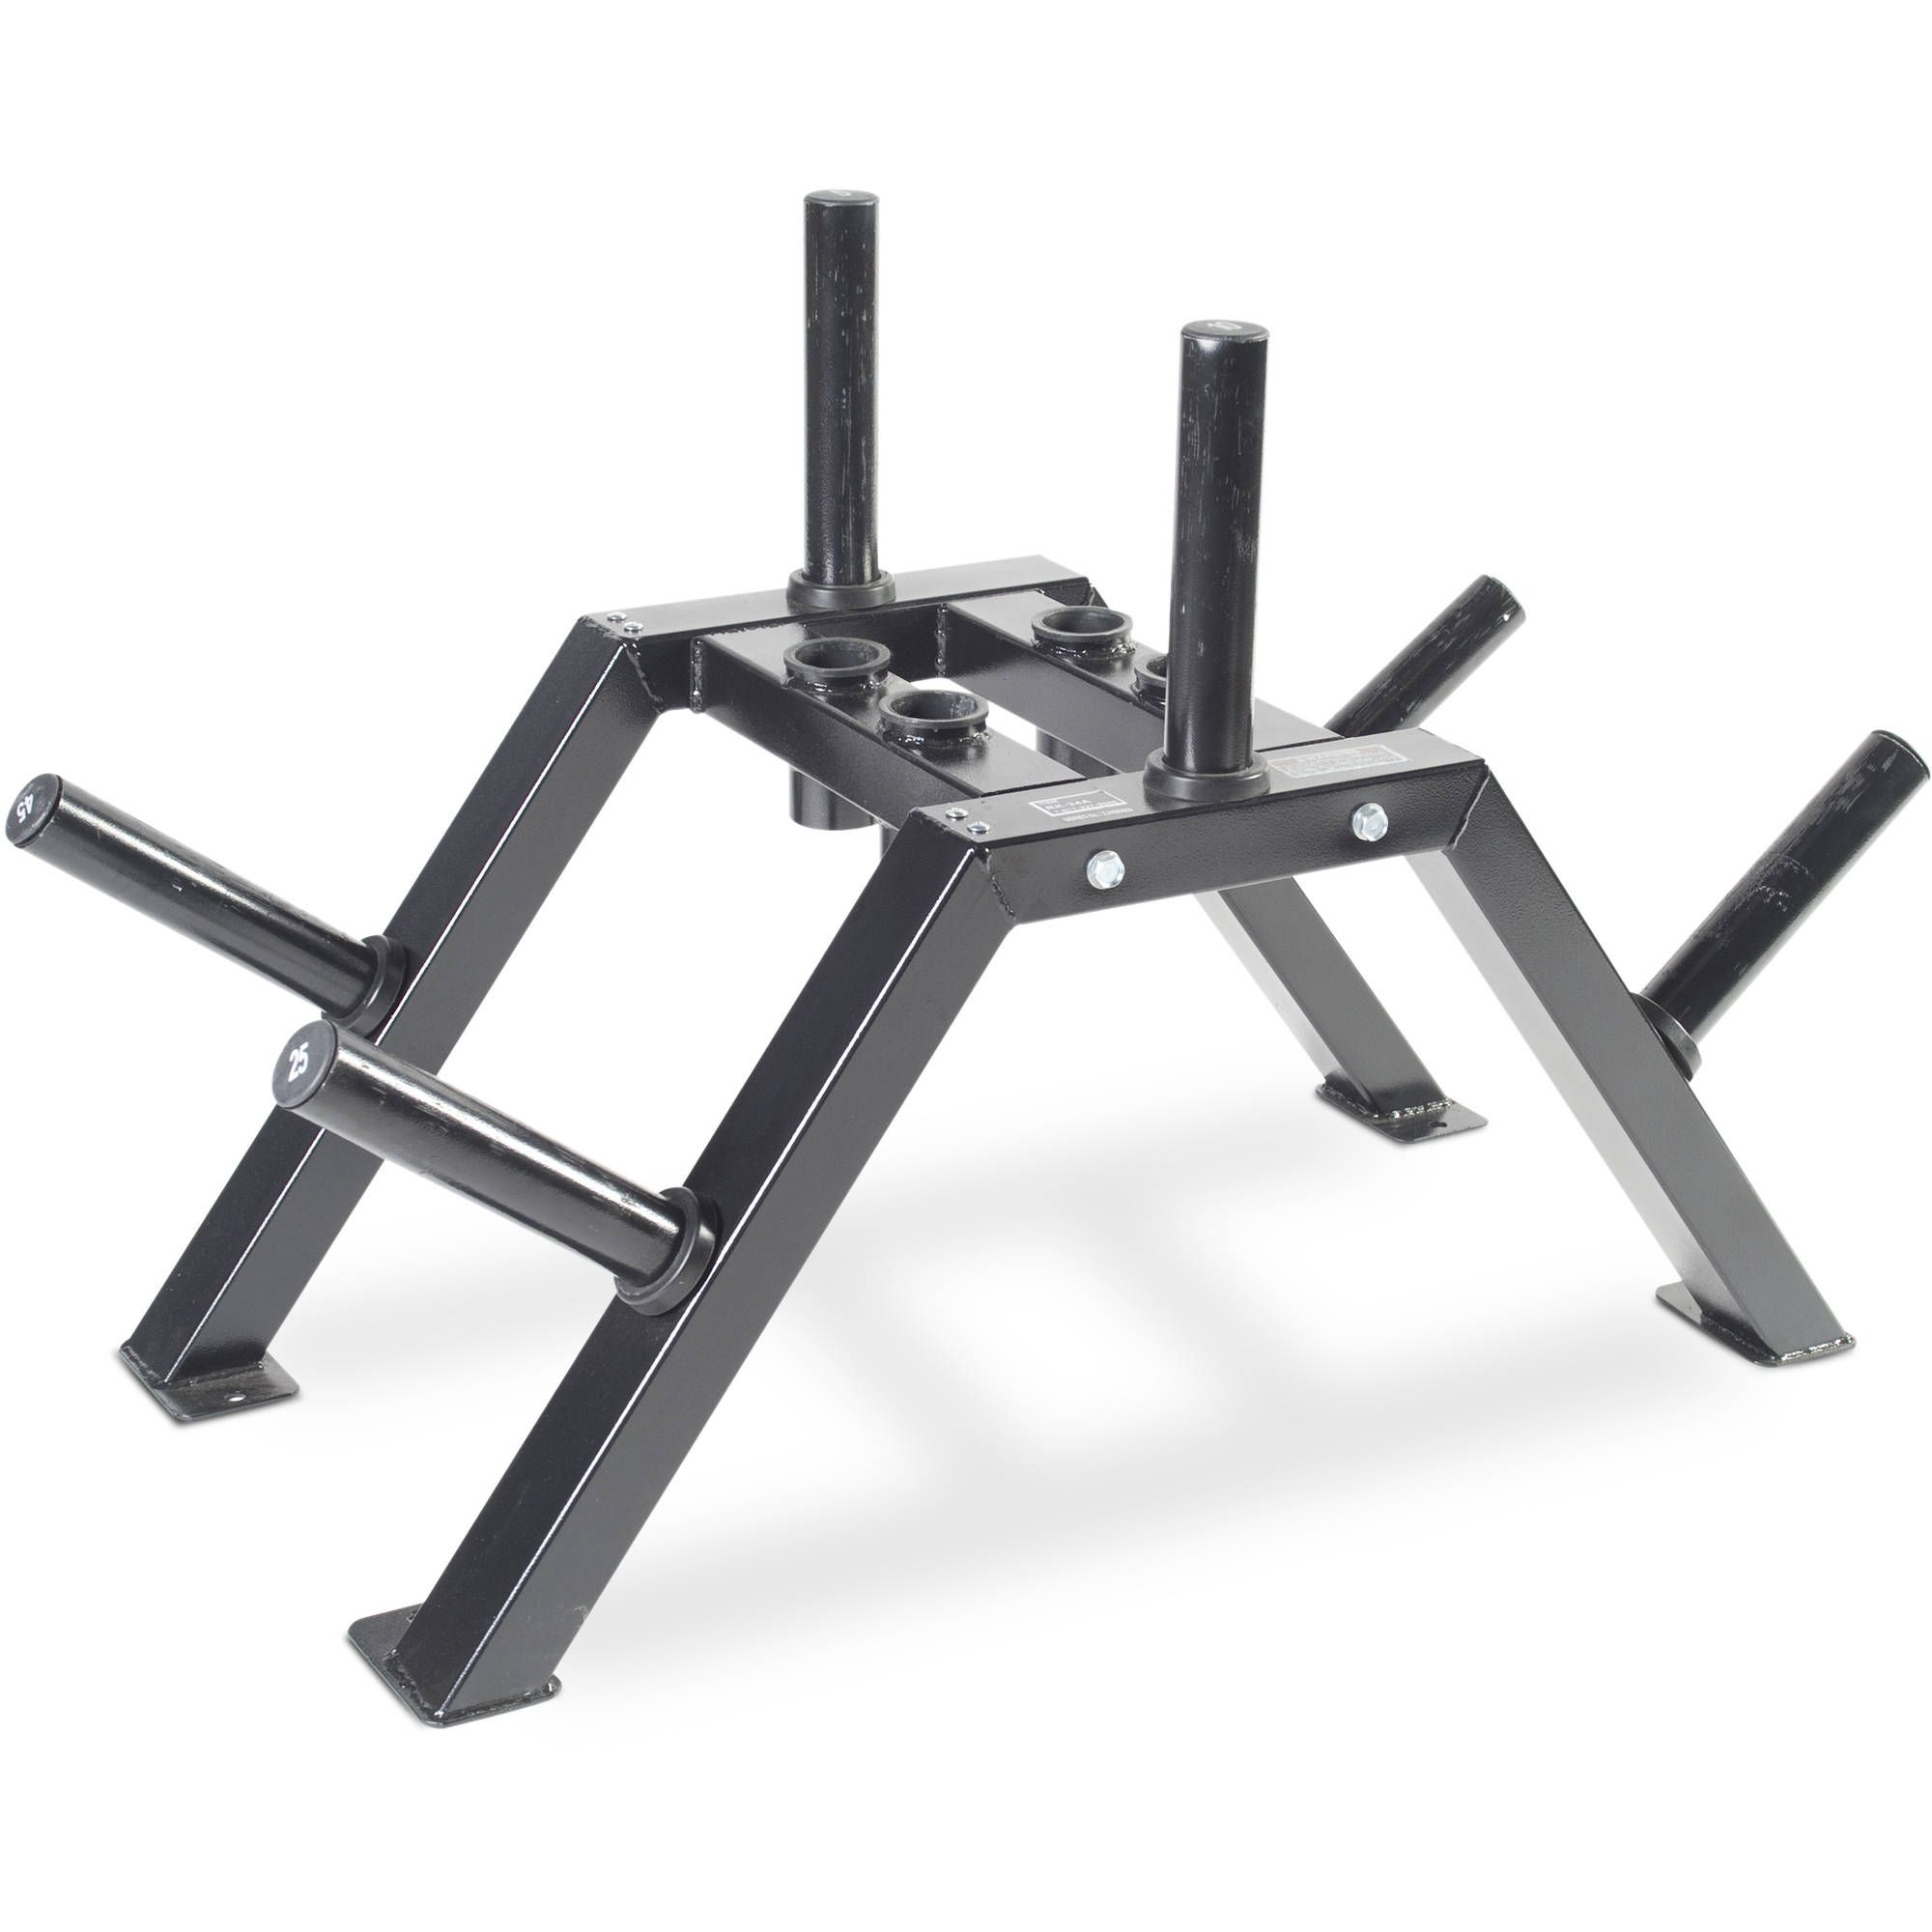 and marbo fitness shop accessories collections weights storage rack kettlebells barbell for gym sport equipment stand made dumbbells by azfitnessequipmentcom from